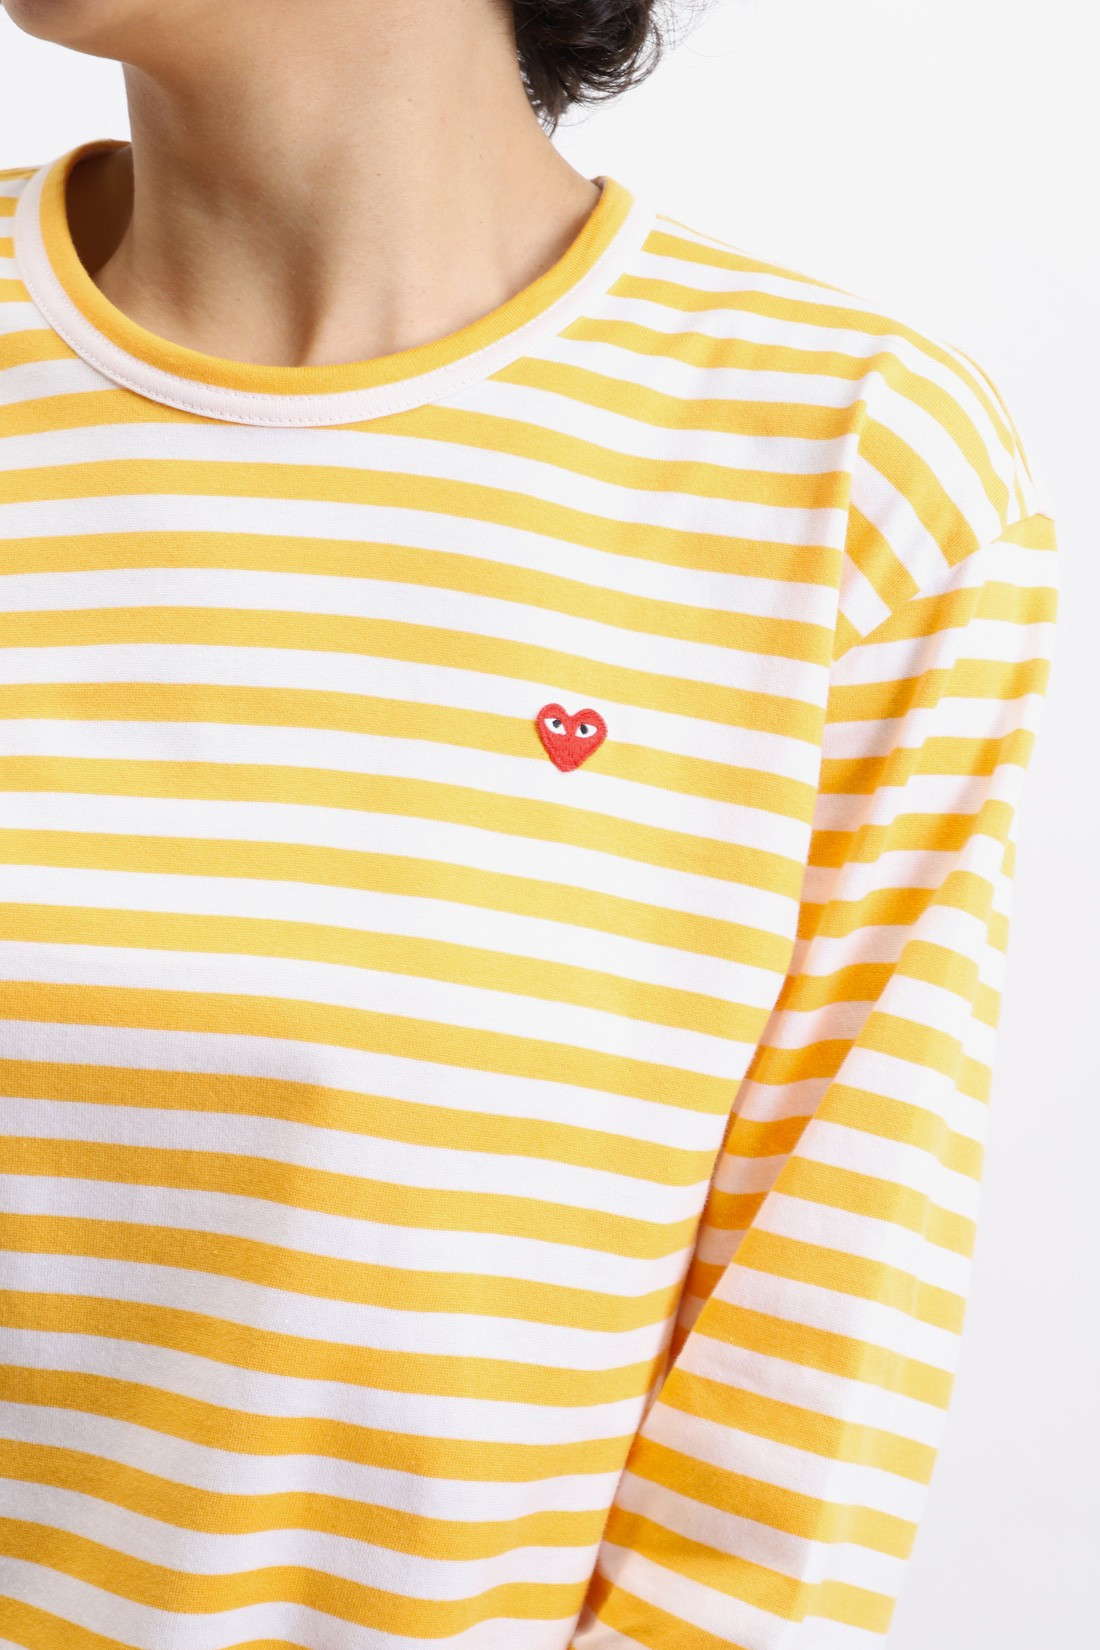 COMME DES GARÇONS PLAY / Play striped t-shirt Yellow